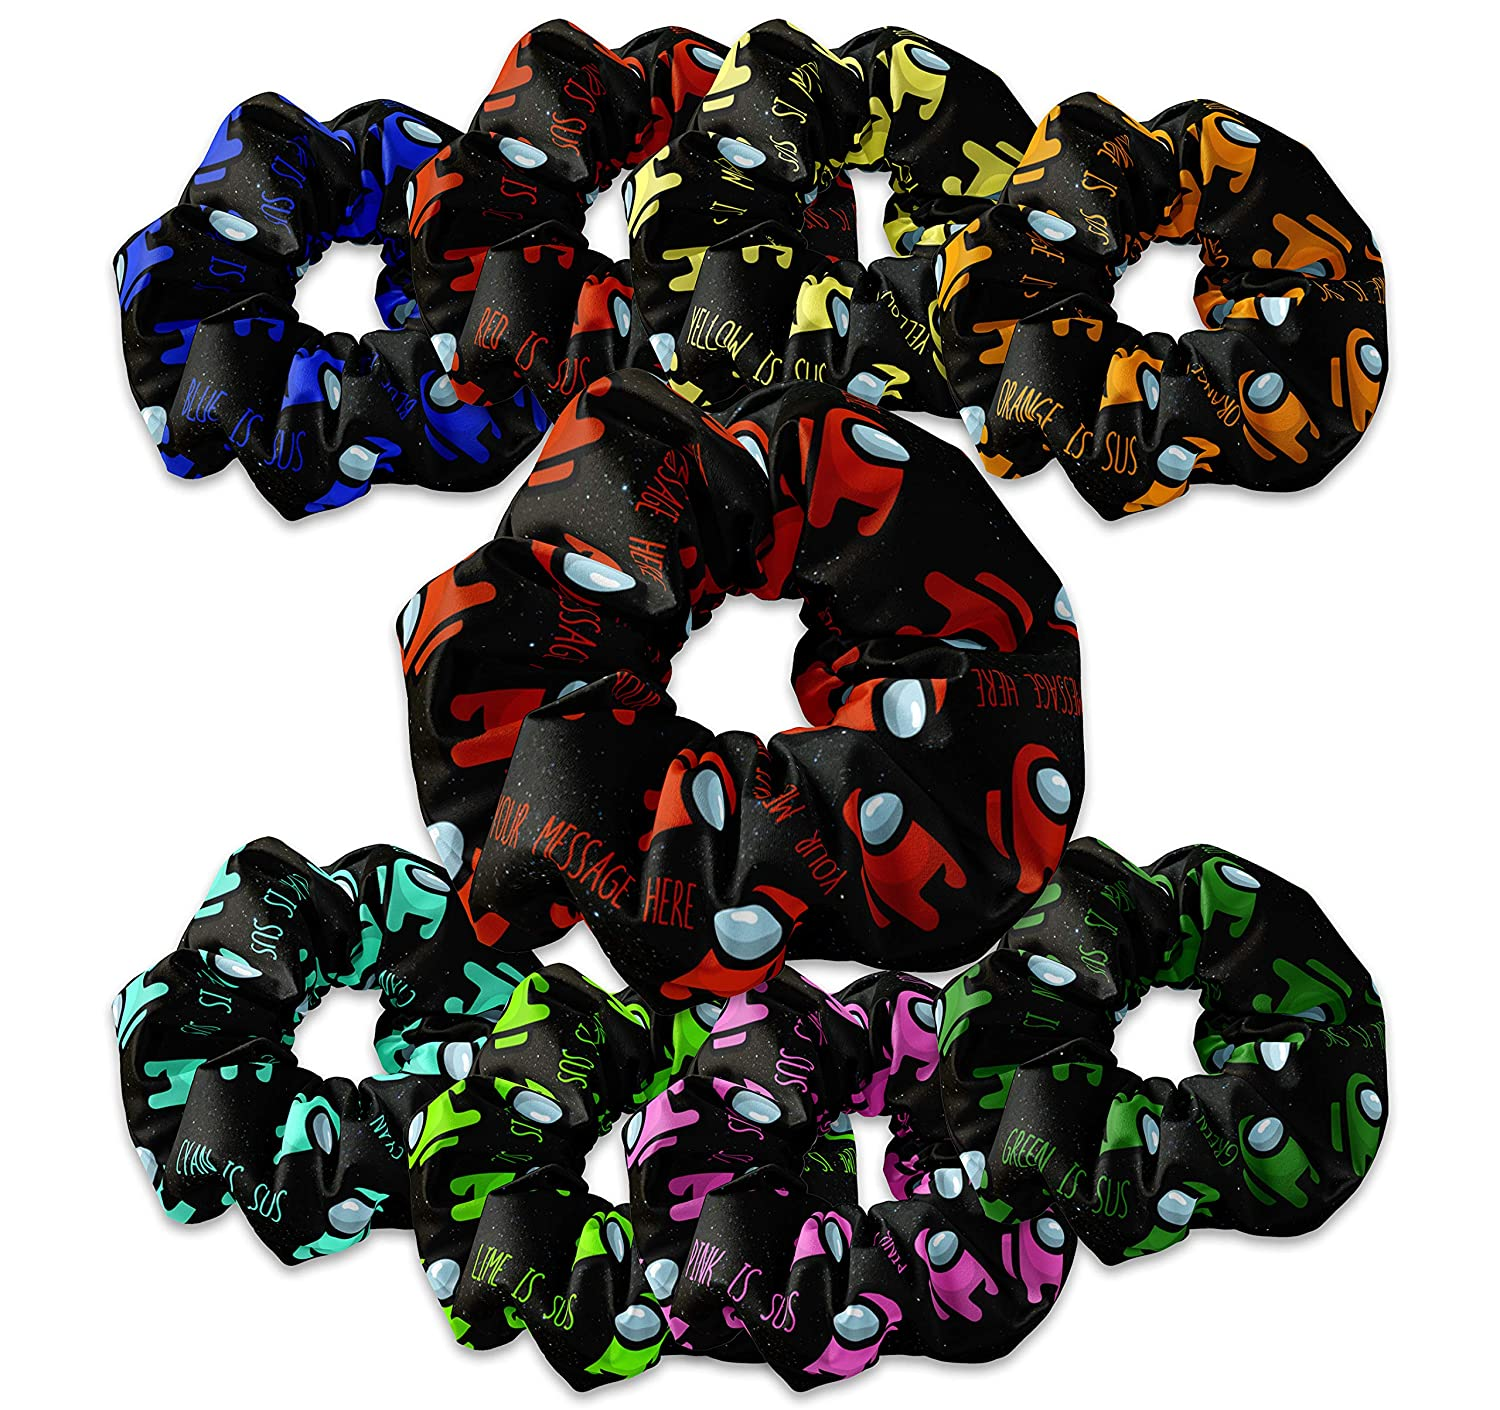 Personalizable Space Game Inspired National products Be super welcome Scrunchie Sc 8-bit Hair Ties